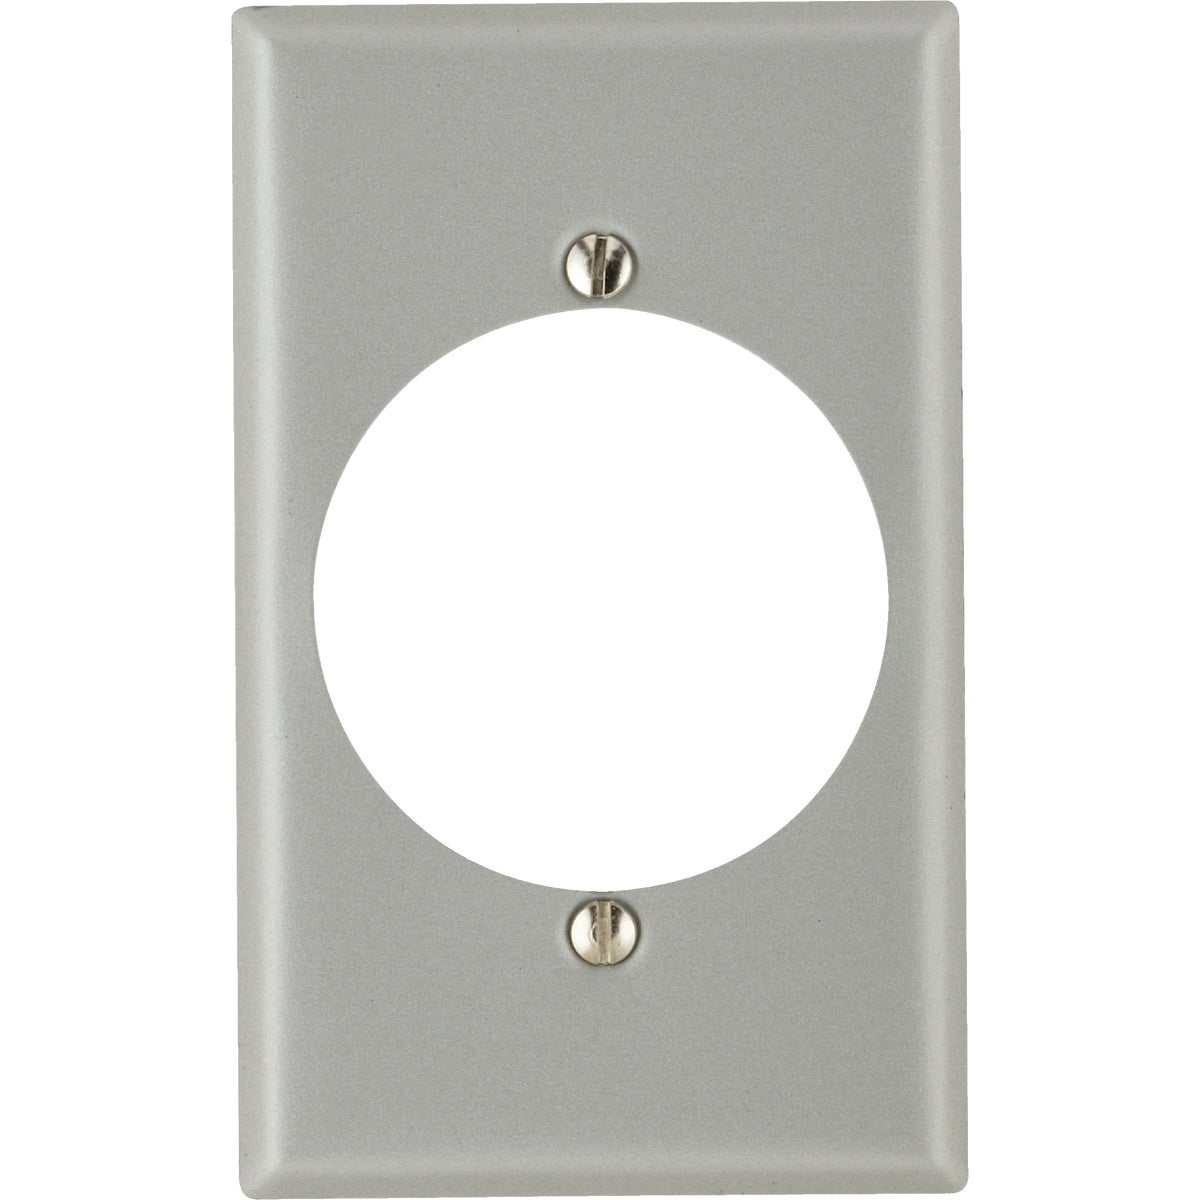 STL RANGE/DRY WALL PLATE - 4927 by Leviton Mfg Co